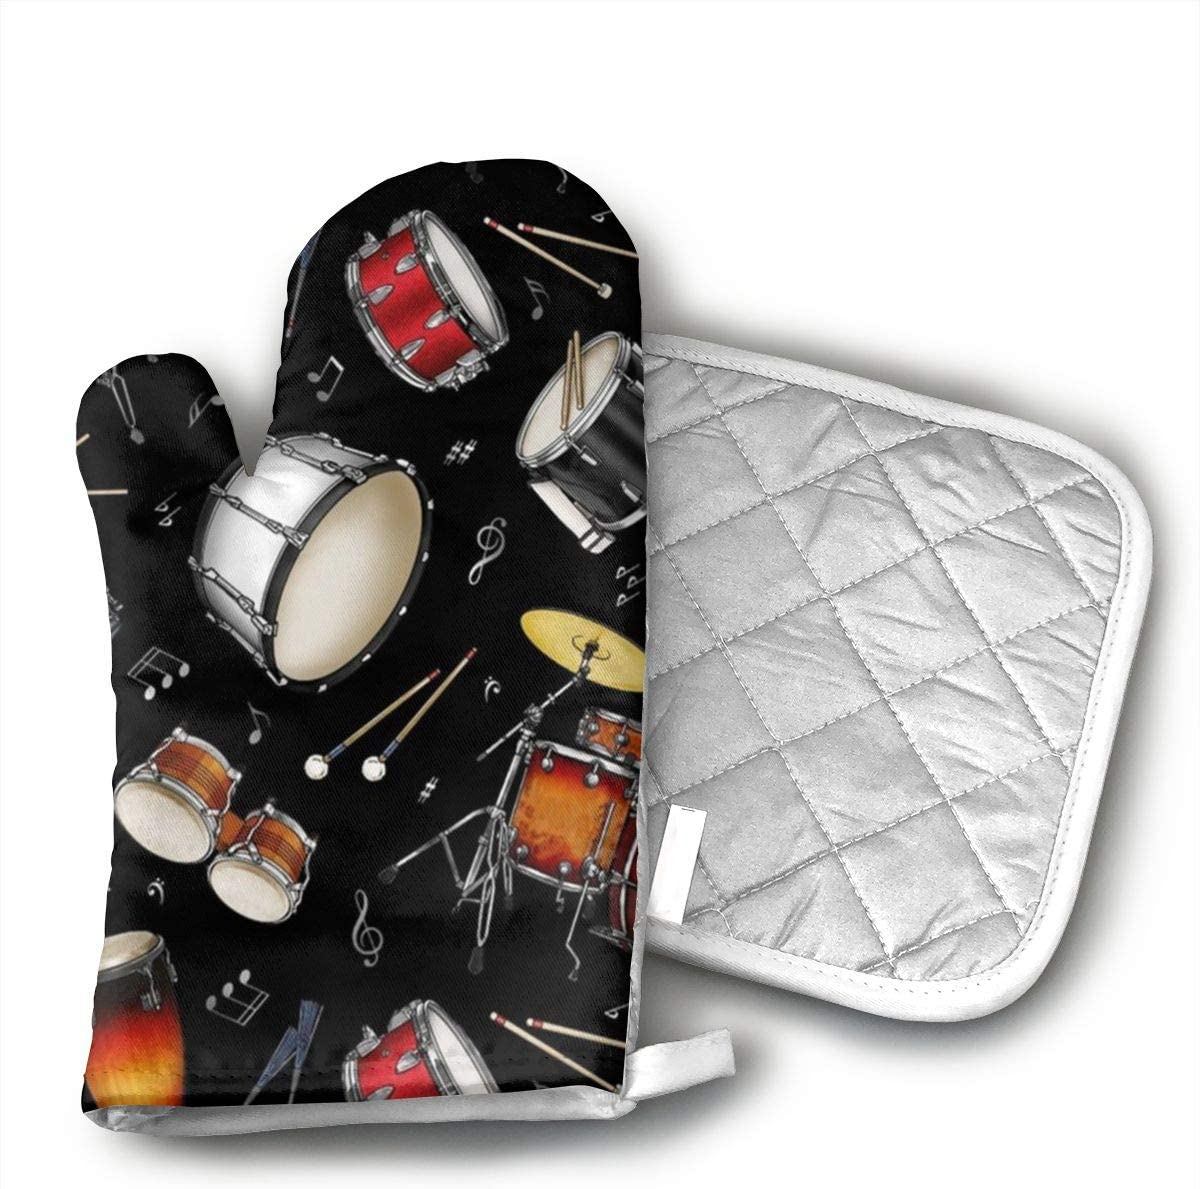 Wiqo9 Rock Drum Stand.jpg Oven Mitts and Pot Holders Kitchen Mitten Cooking Gloves,Cooking, Baking, BBQ.